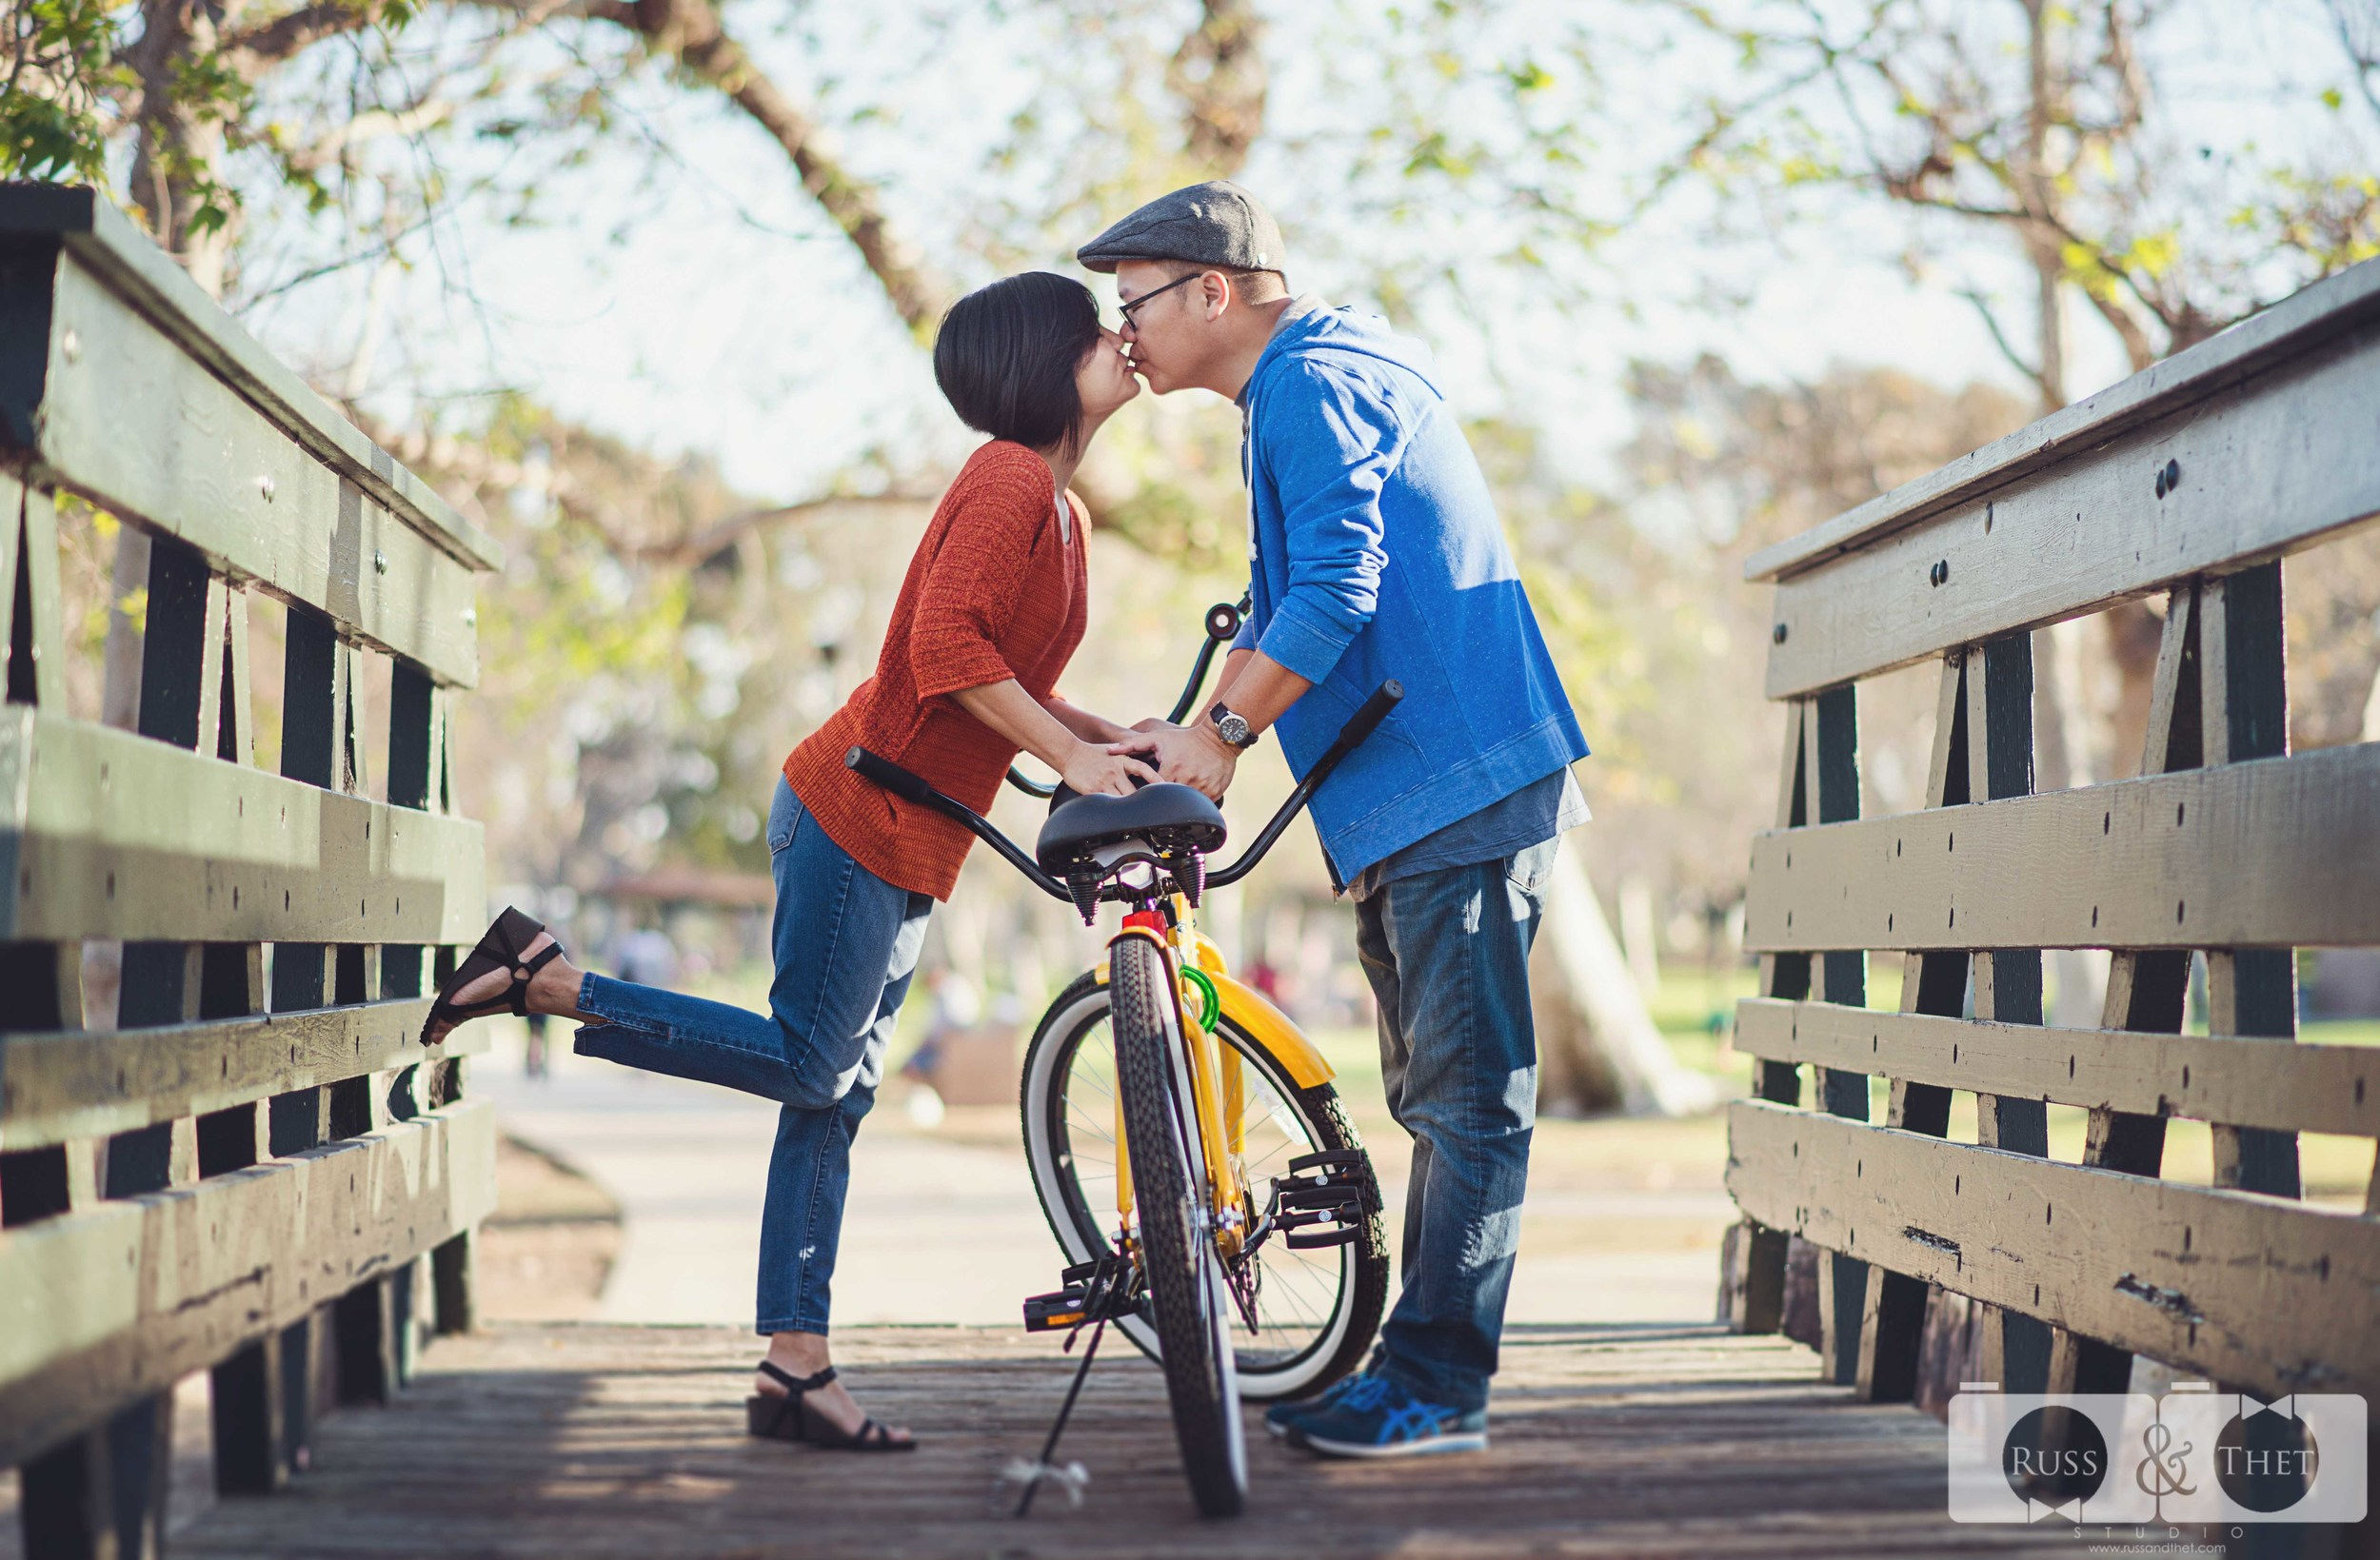 Mission-san-juan-capistrano-engagement-session-27.JPG